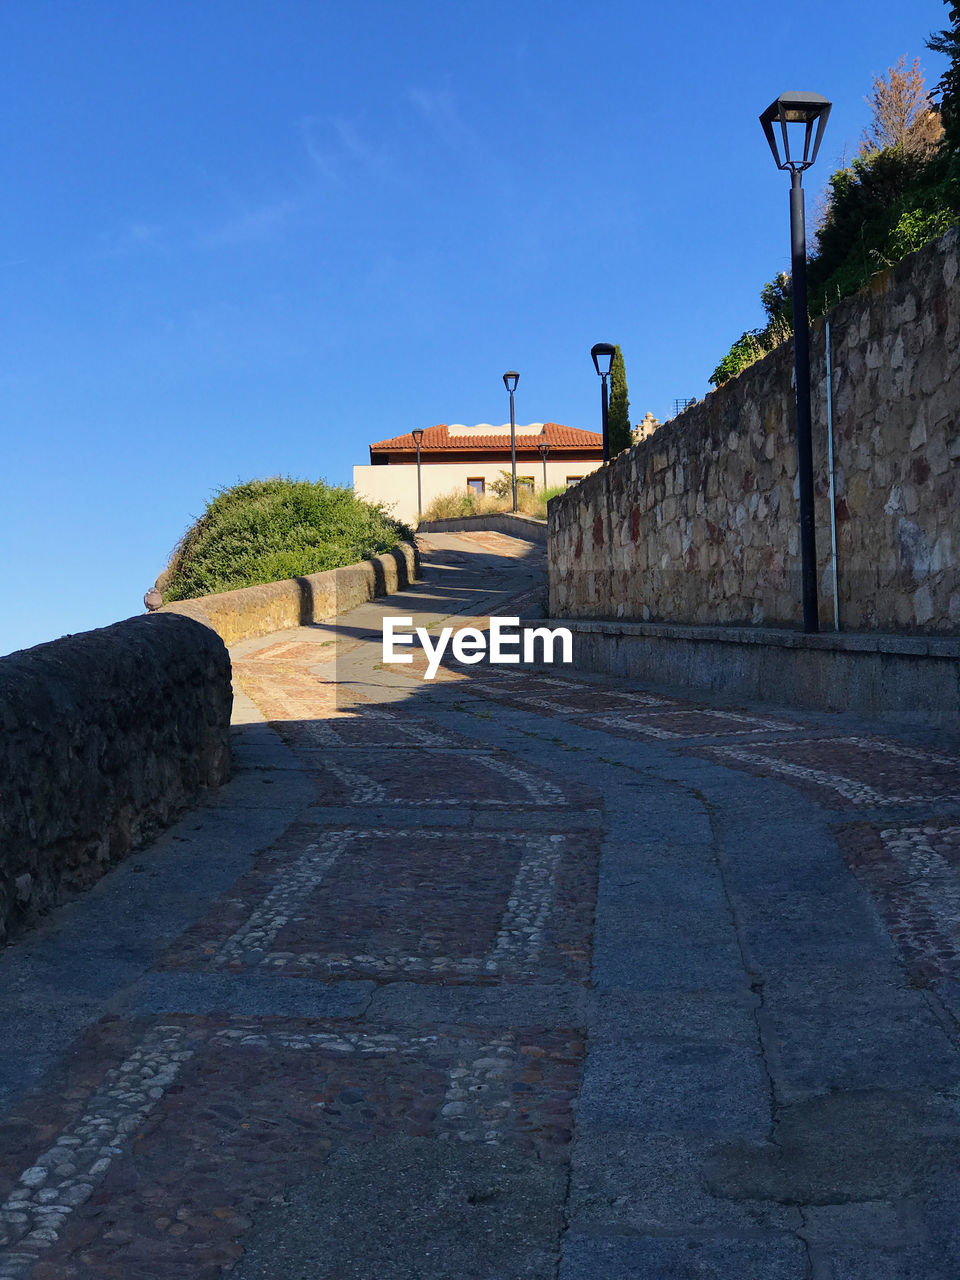 sky, architecture, built structure, street light, clear sky, nature, sunlight, blue, the way forward, no people, direction, day, history, the past, street, wall, building exterior, footpath, shadow, lighting equipment, outdoors, stone wall